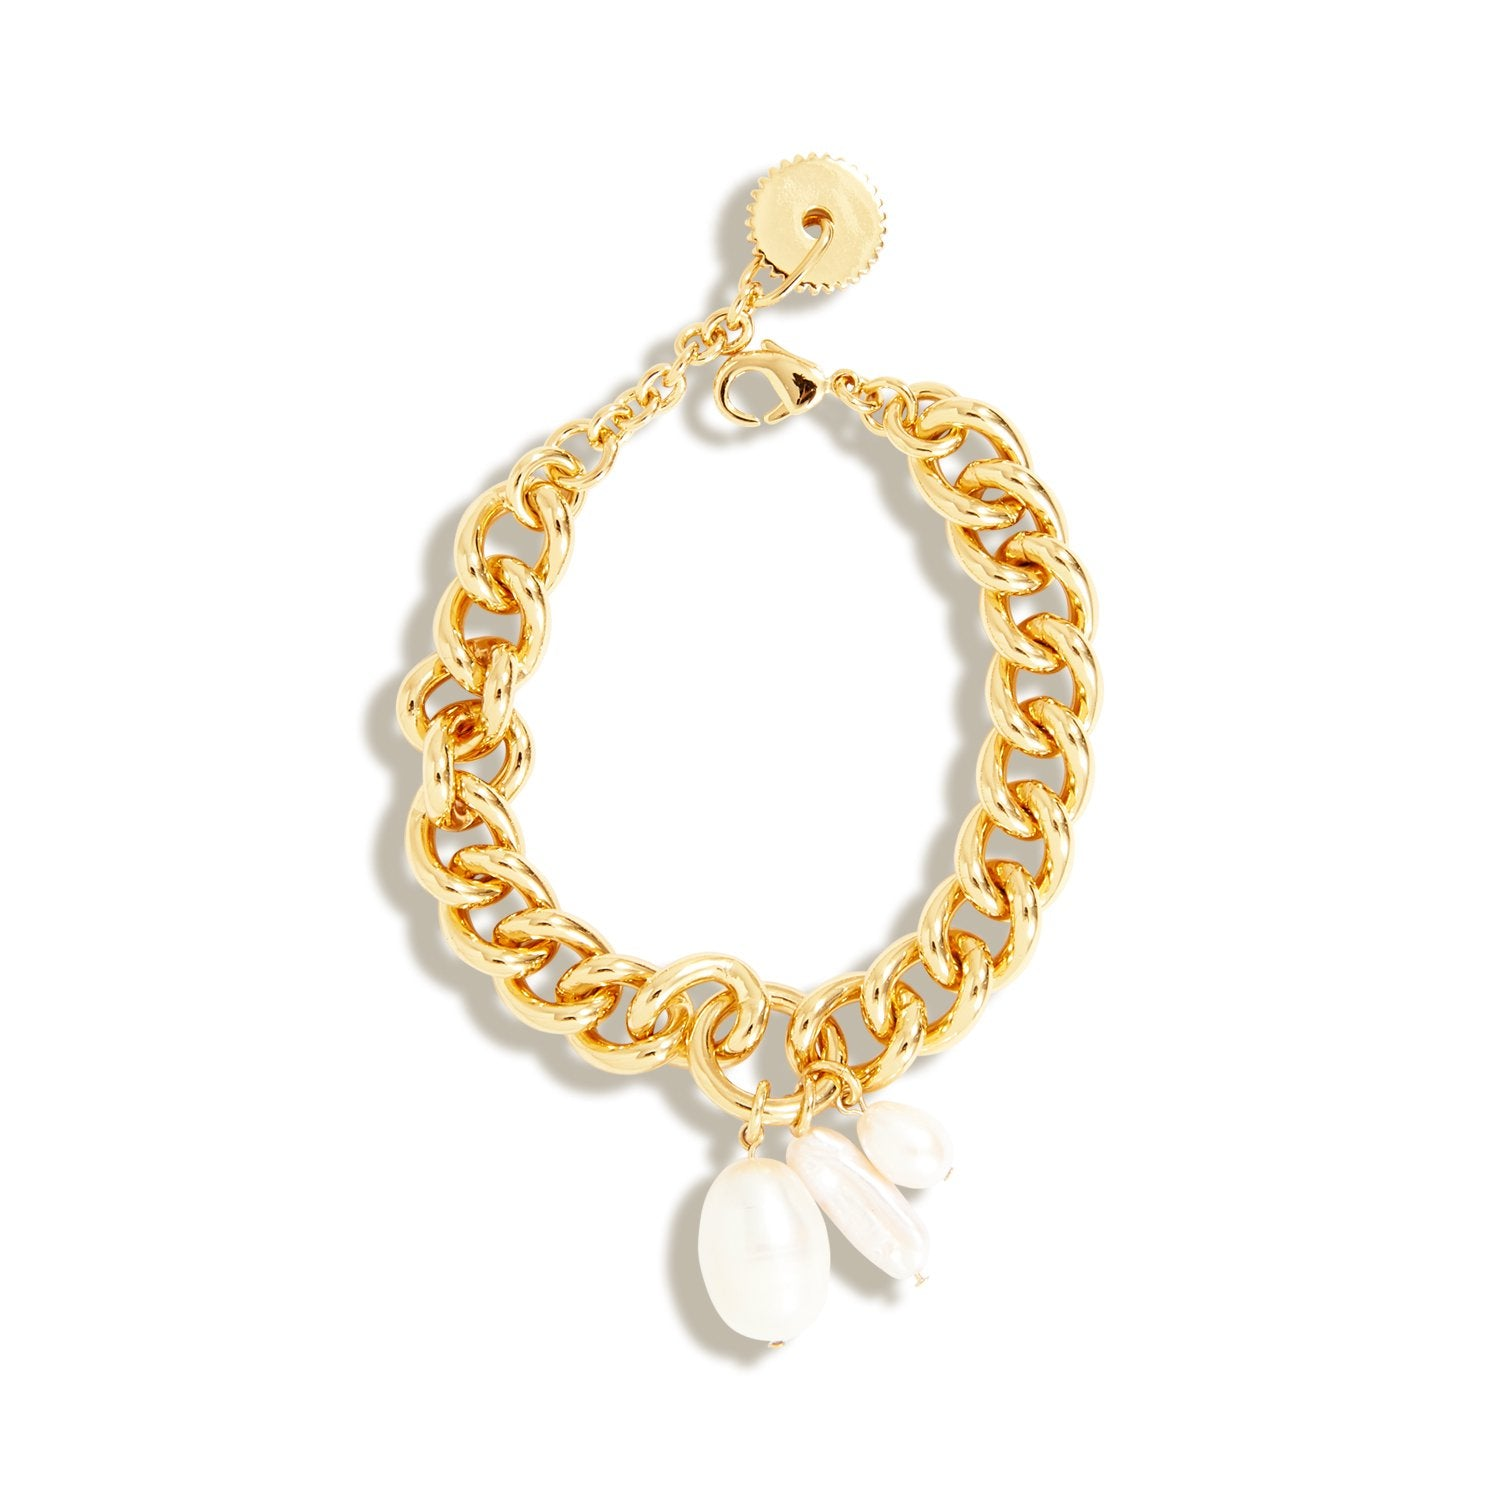 Margot Pearl Bracelet